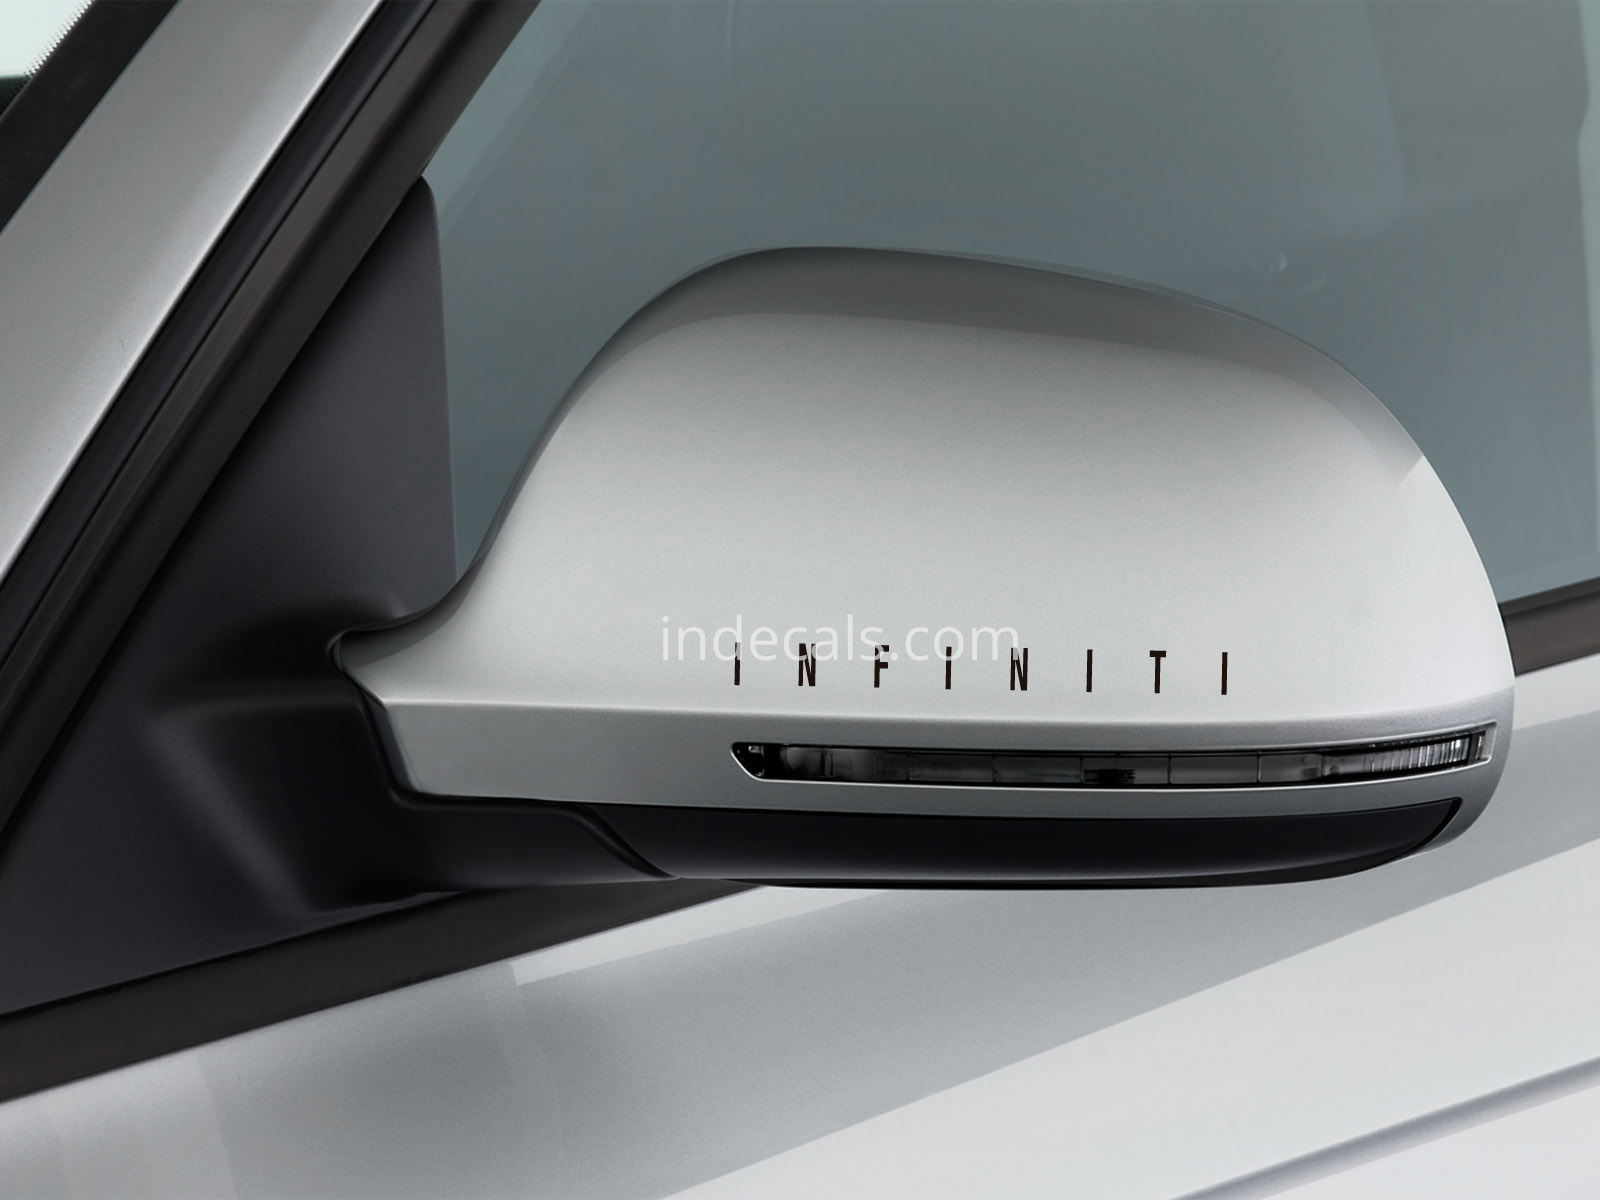 3 x Infiniti Stickers for Mirrors - Black